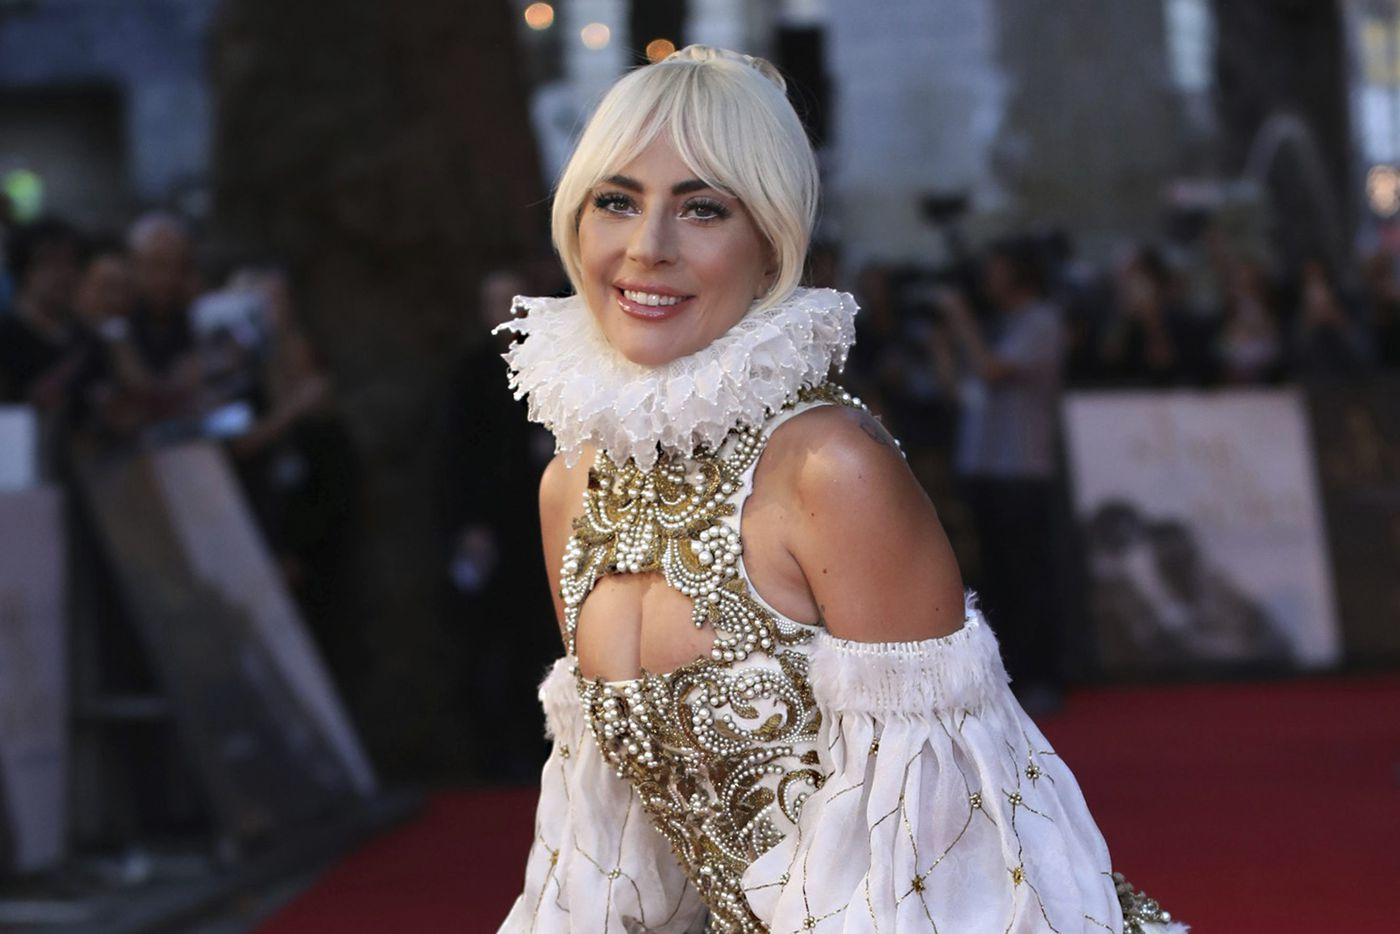 Lady Gaga pens global call for suicide prevention, mental-health support